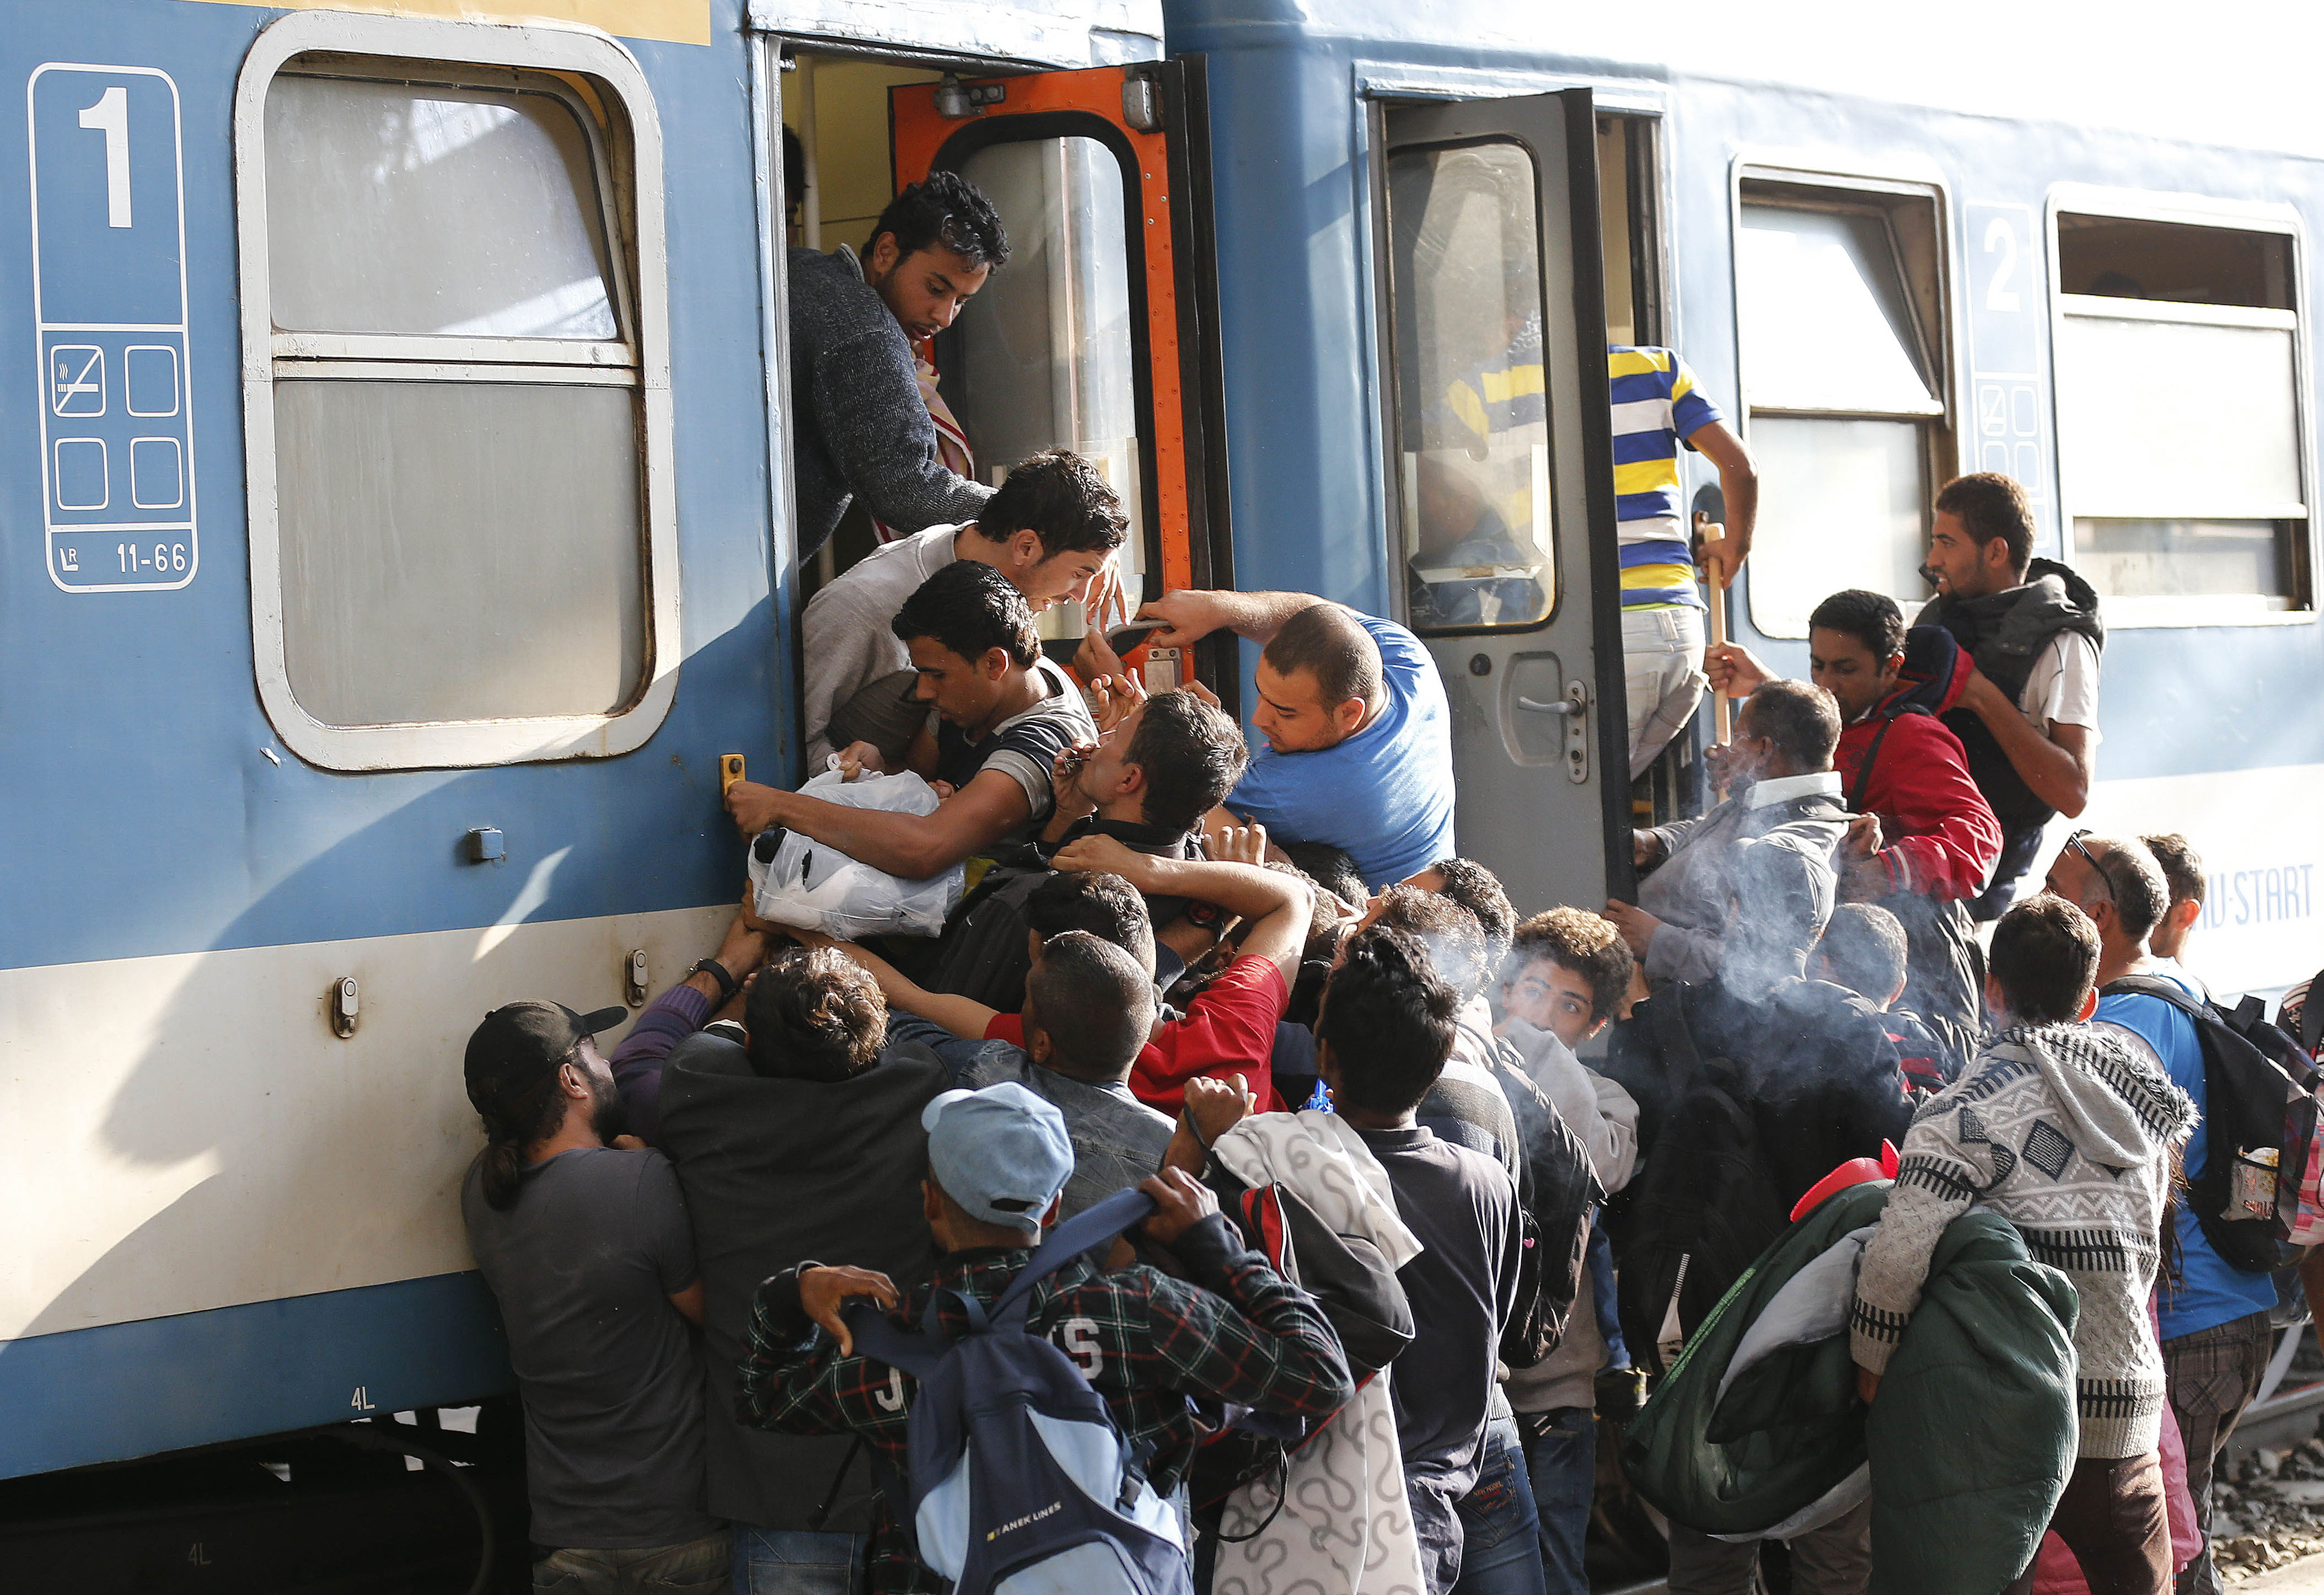 syrian refugees problem Dispatch: germany has a refugee problem, and the problem is the  unidentified syrian refugees arive at the refugee center on december 10, 2013 in friedland, germany hundreds of thousands of .